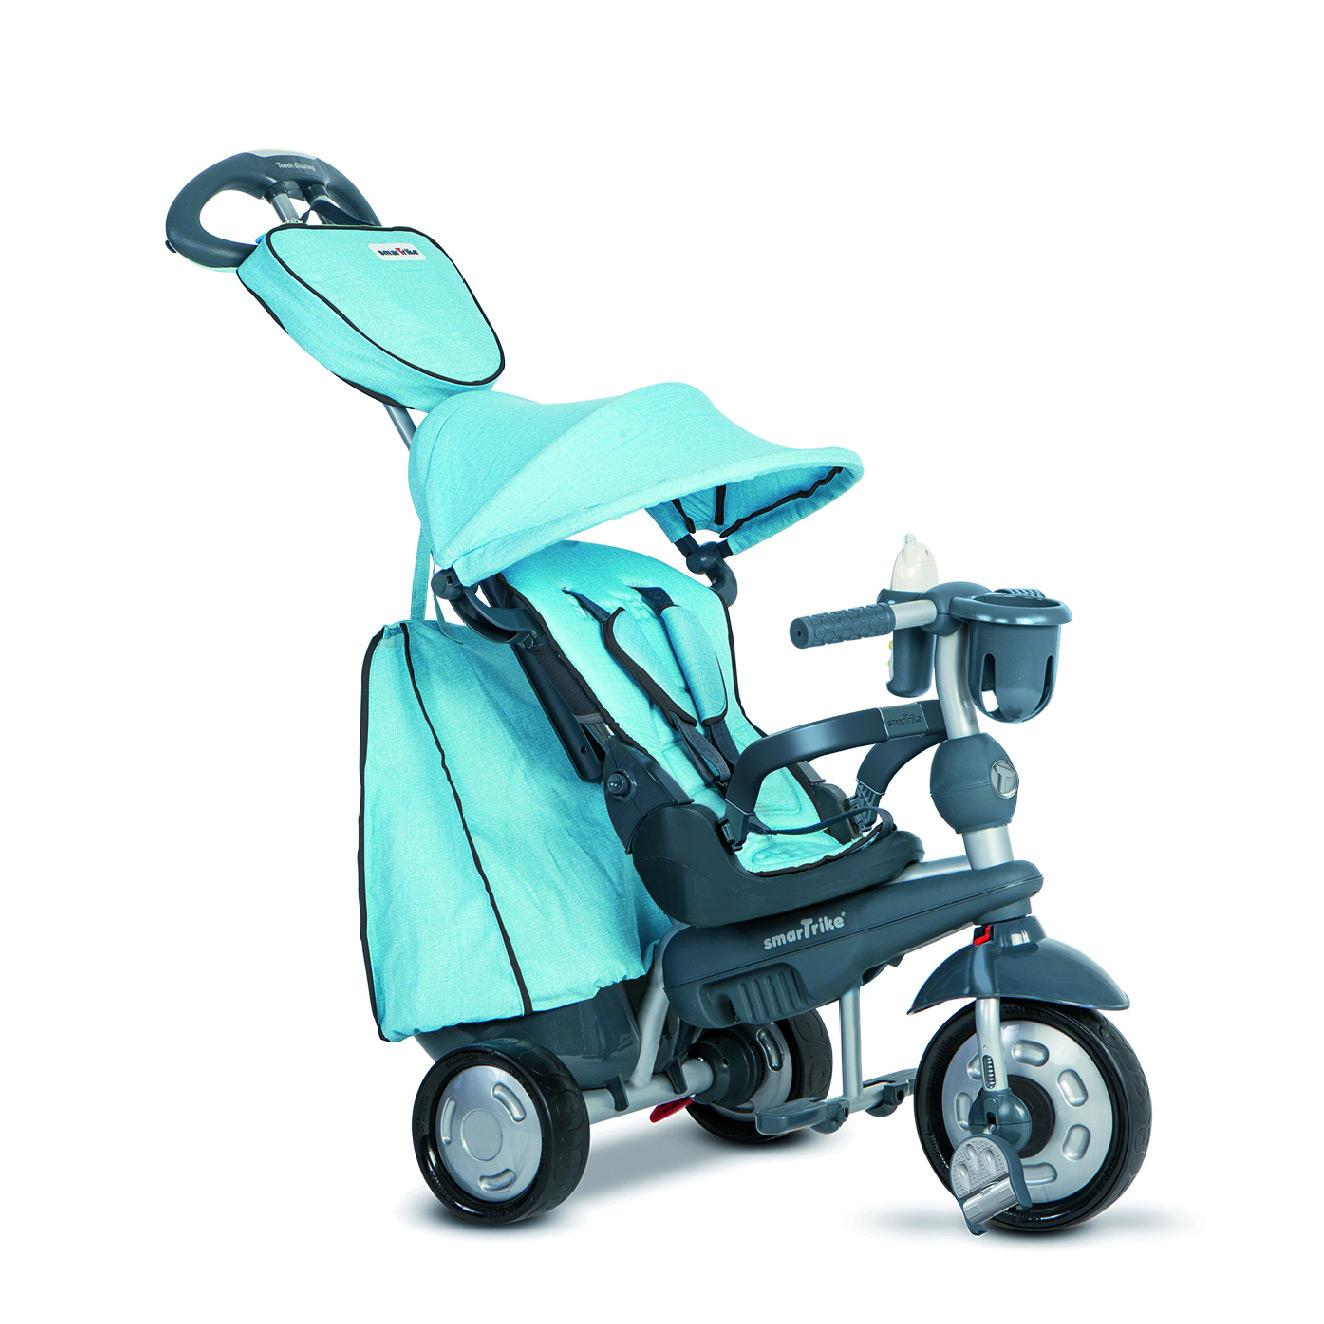 Pojazd/Rowerek Smart Trike Explorer 5w1